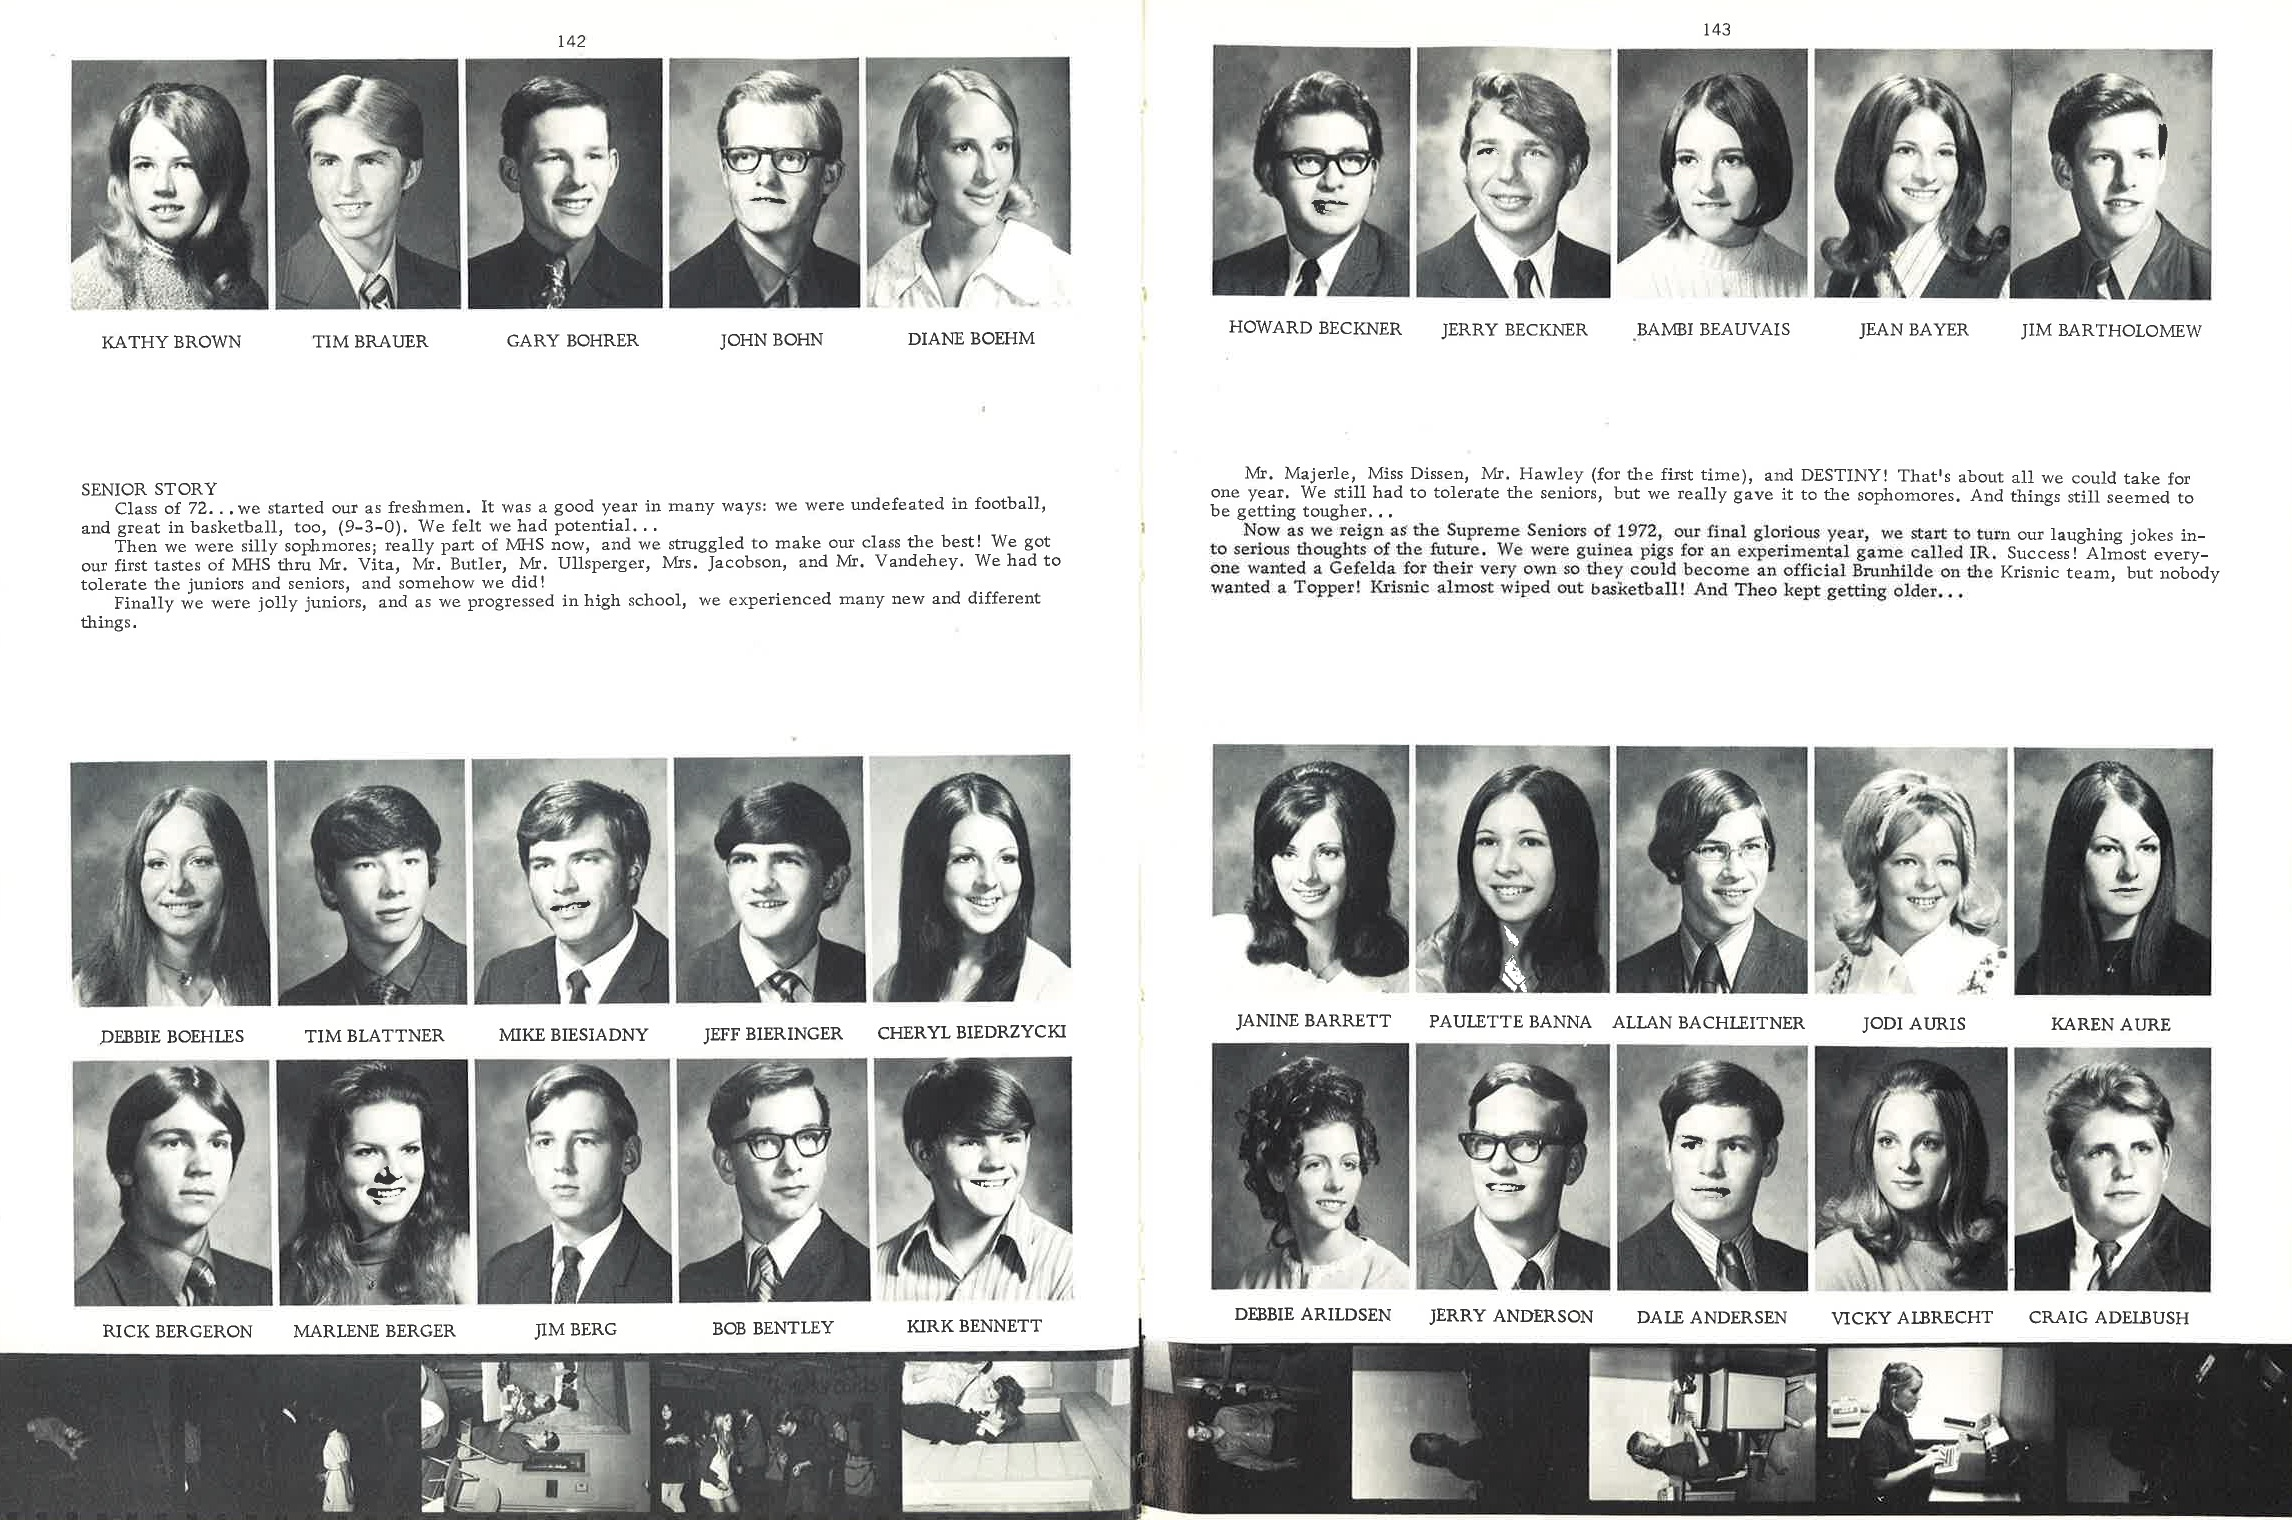 1972_Yearbook_142-143.jpg